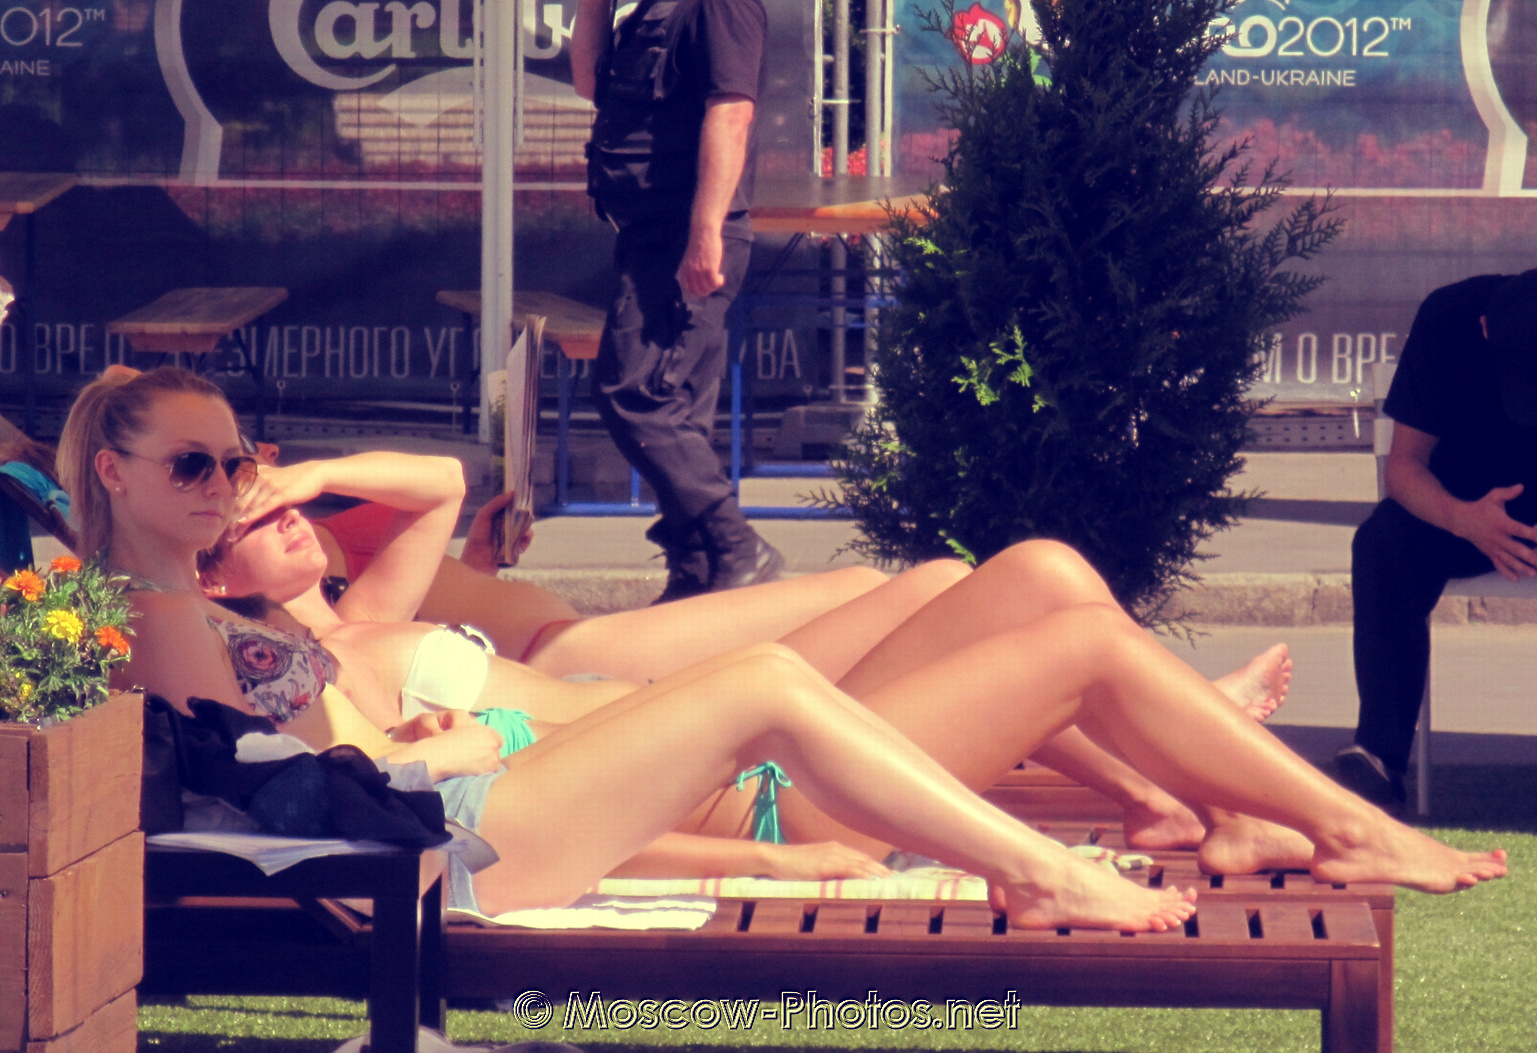 Russian girls sunbathing in the park